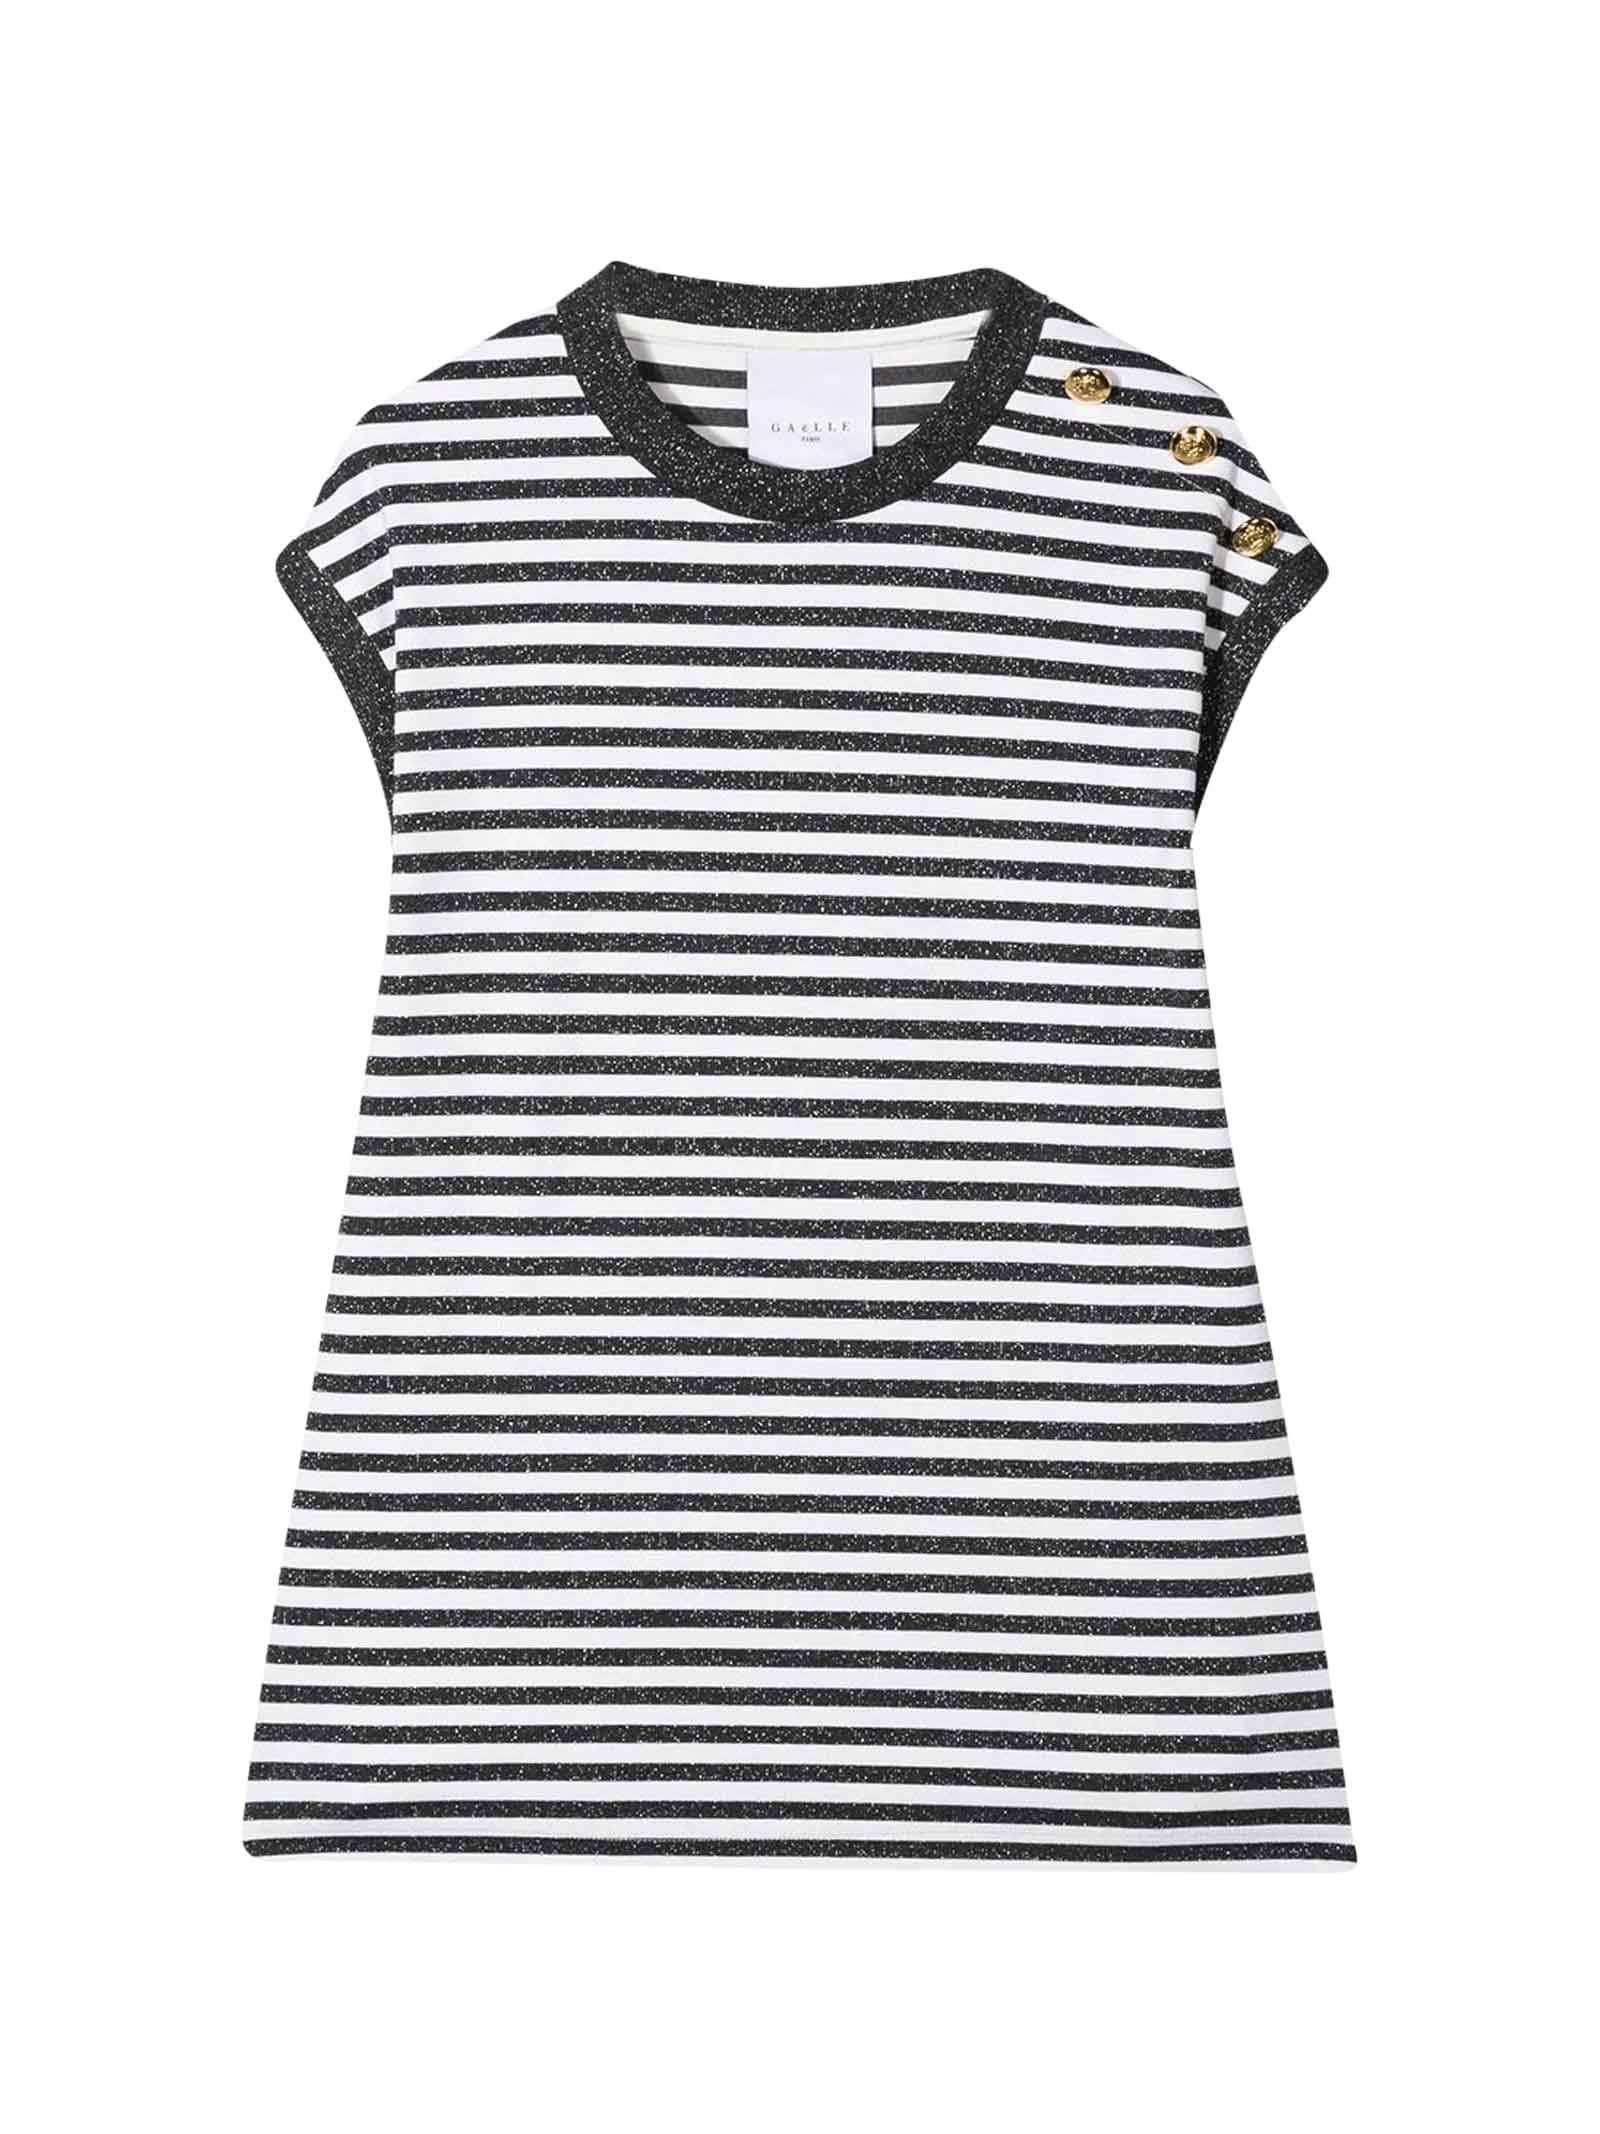 Buy Gaelle Bonheur Kids Striped Dress online, shop Gaelle Bonheur with free shipping